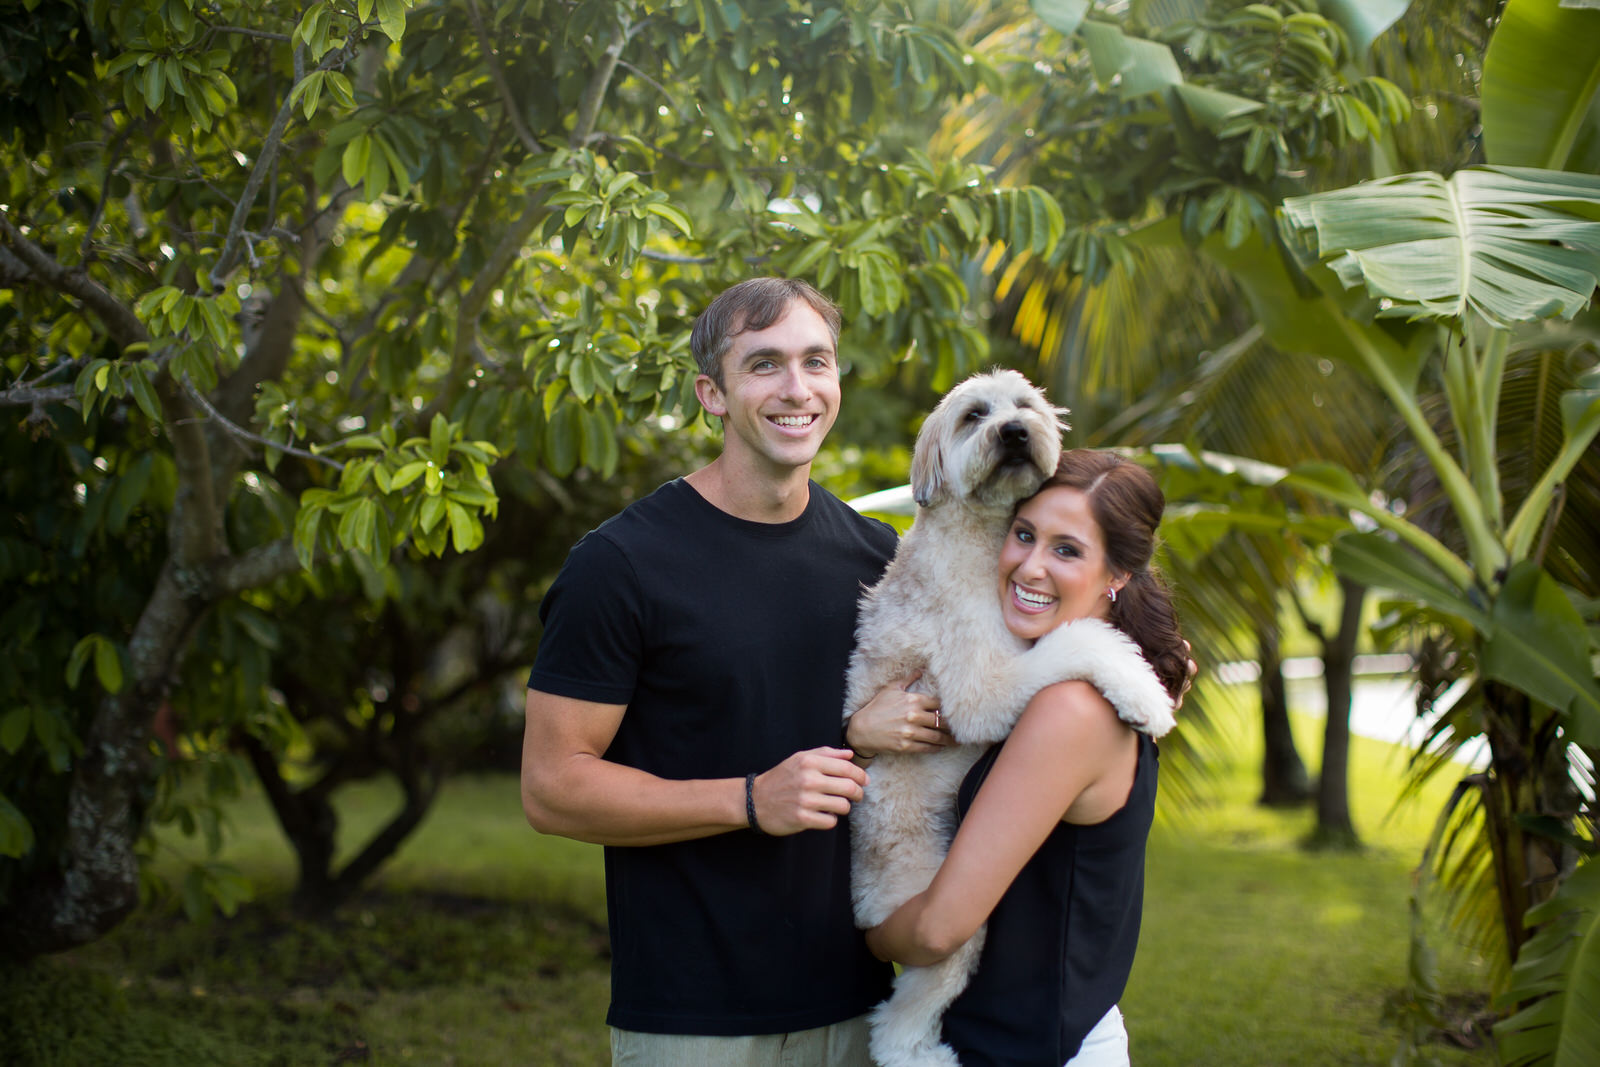 engagement-session-delray-beach-couple-puppy-south-florida.jpg